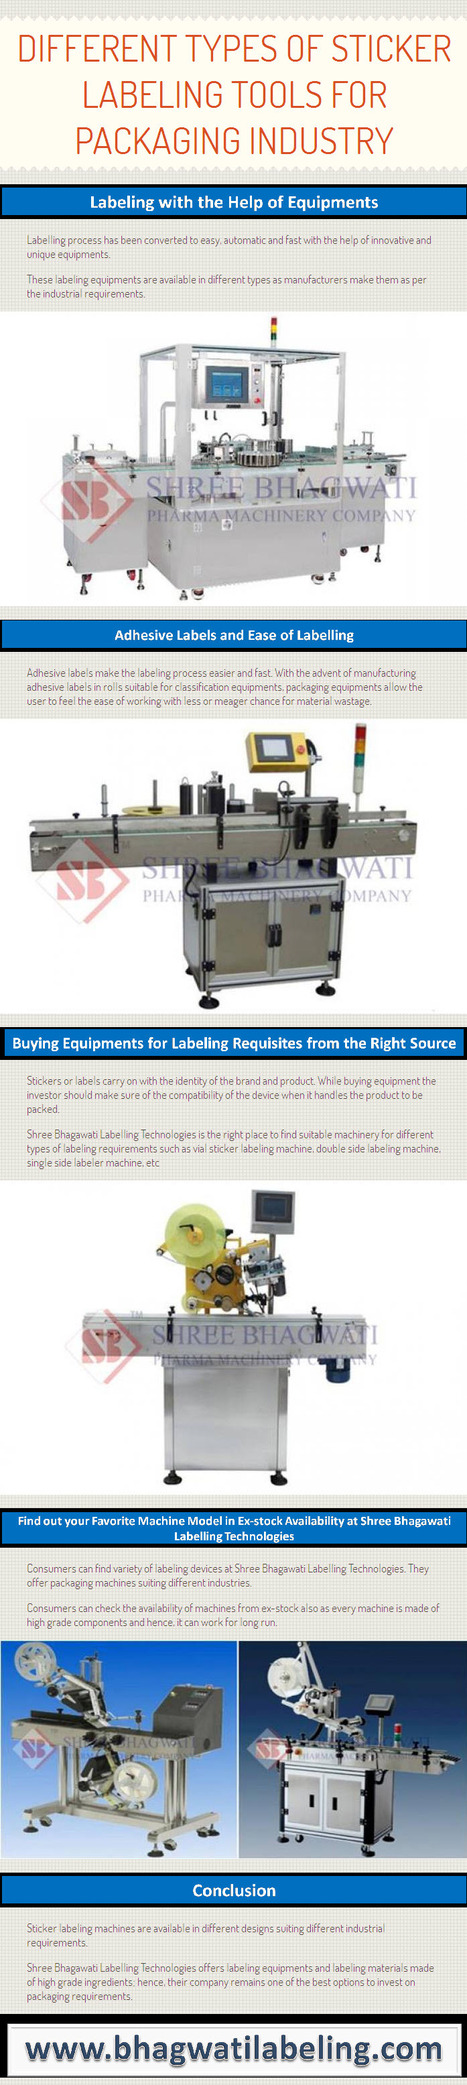 Different Types of Sticker Labeling Tools for Packaging Industry by www.bhagwatilabeling.com | bhagwatilabeling | Scoop.it